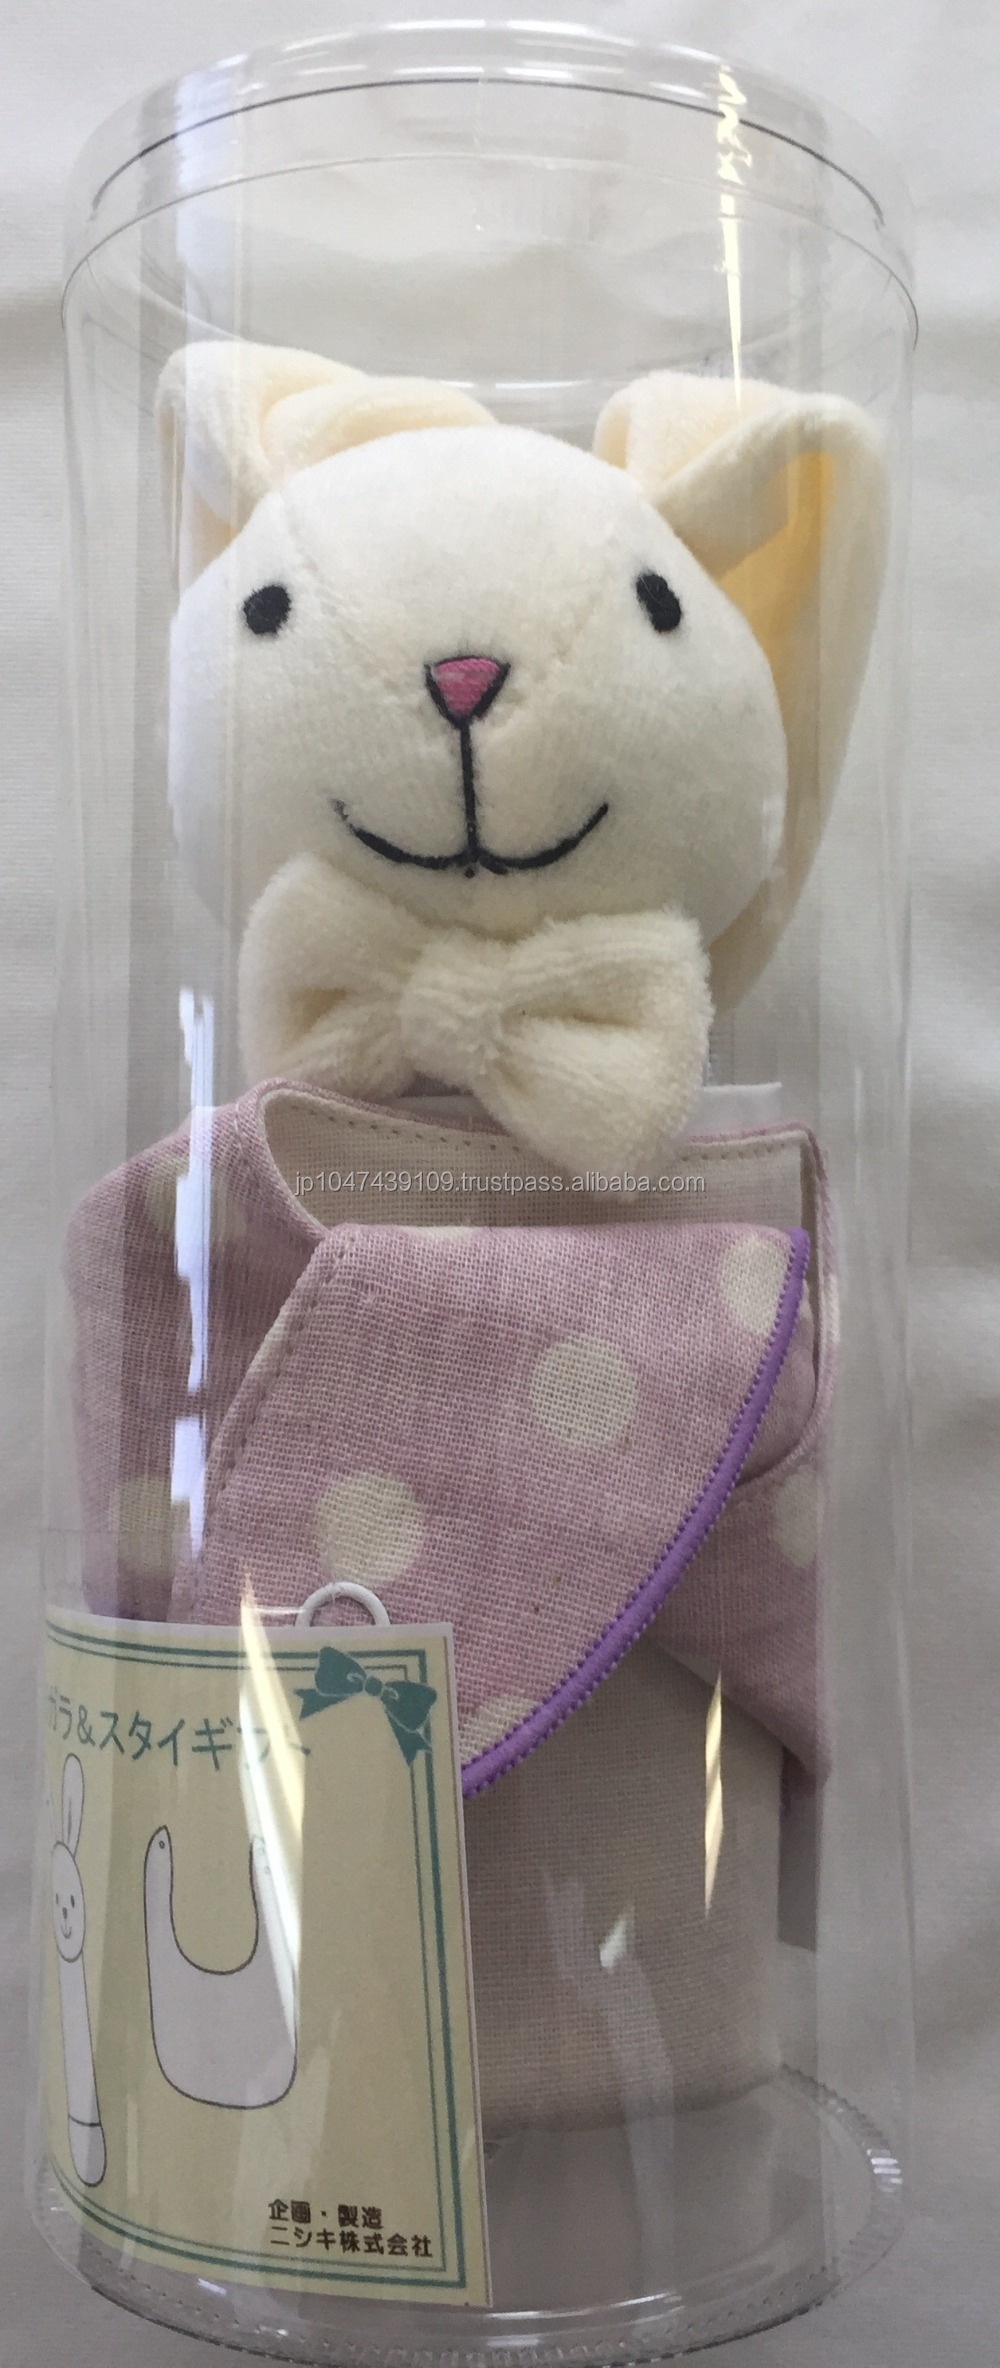 Baby Gifts For Japanese : Japanese wholesale products high quality cute rattle toy